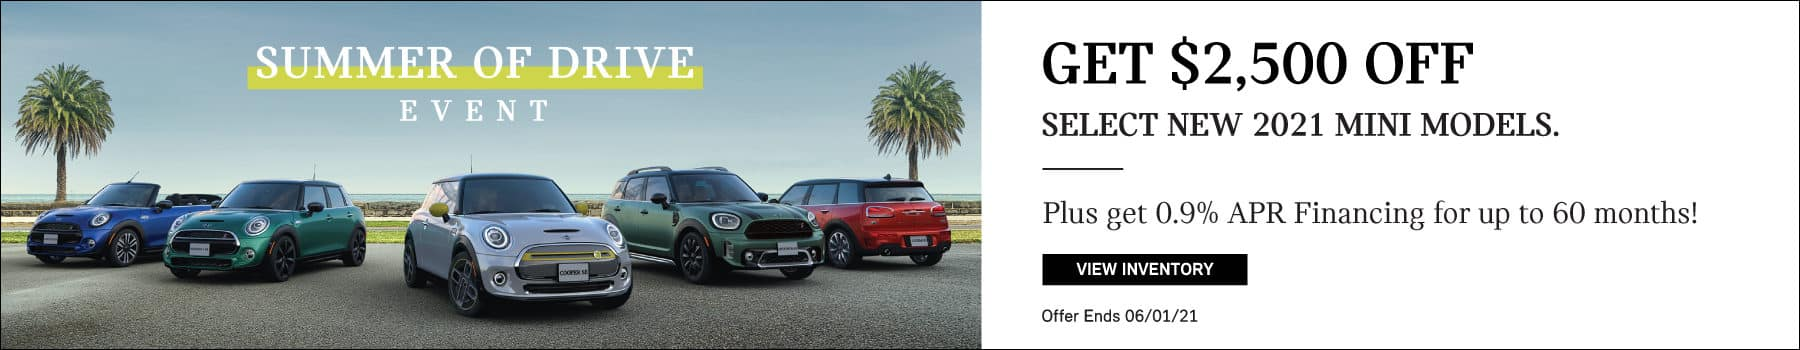 Get $2,500 Off select new 2021 MINI models. Plus 0.9% Financing for up to 36 months. Click to view inventory. Offer ends June1st, 2021.